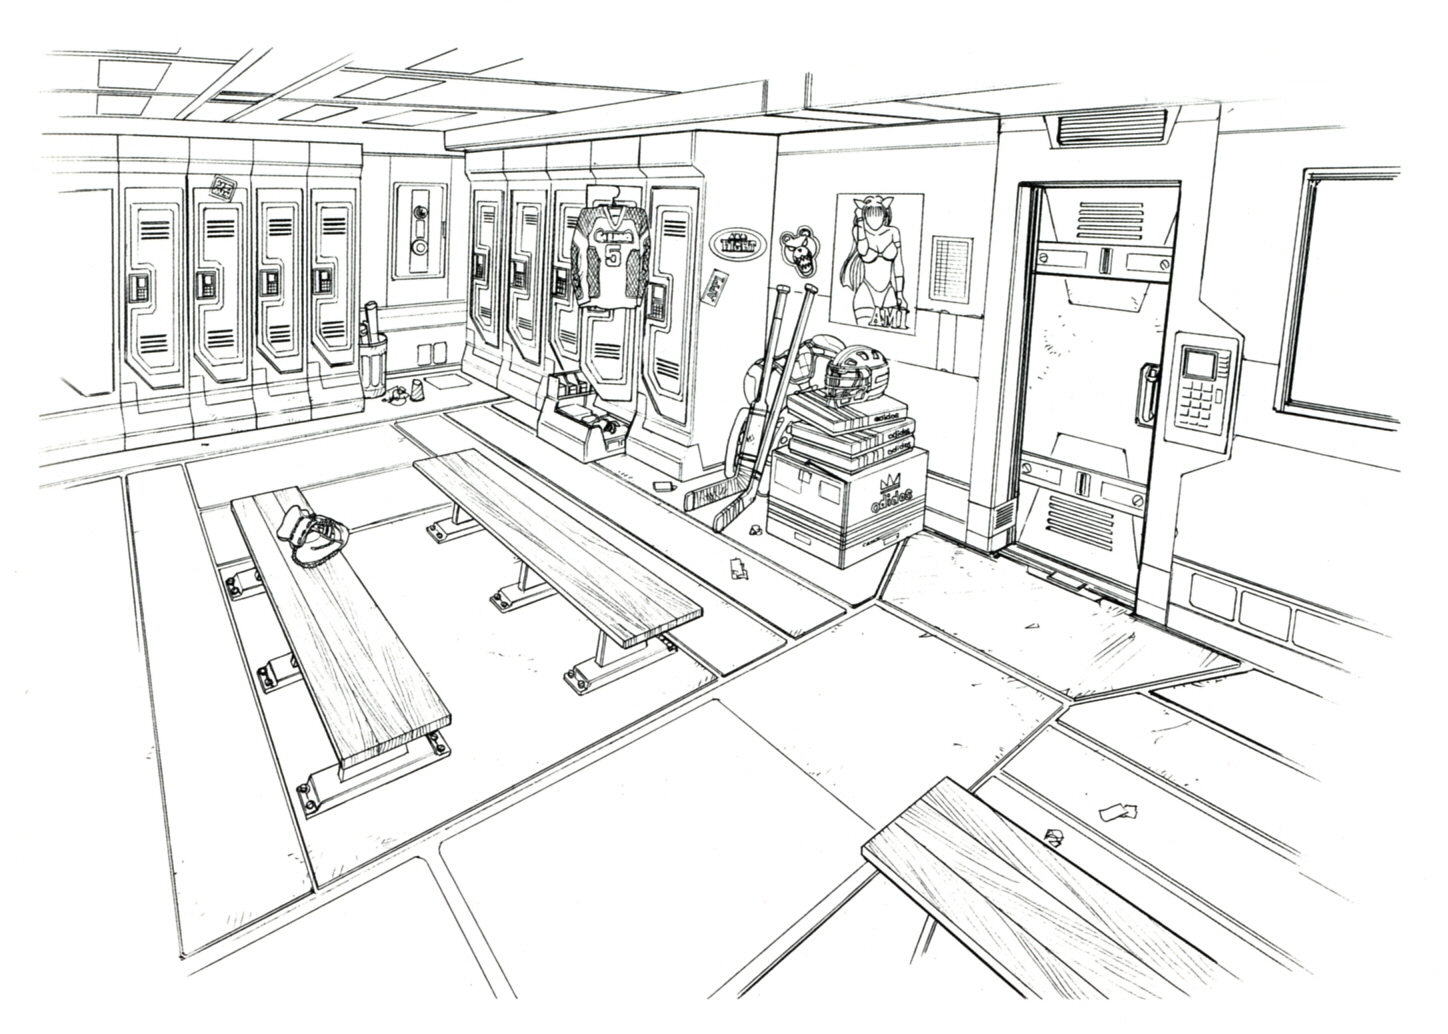 Image galbadia garden locker room ff art g final